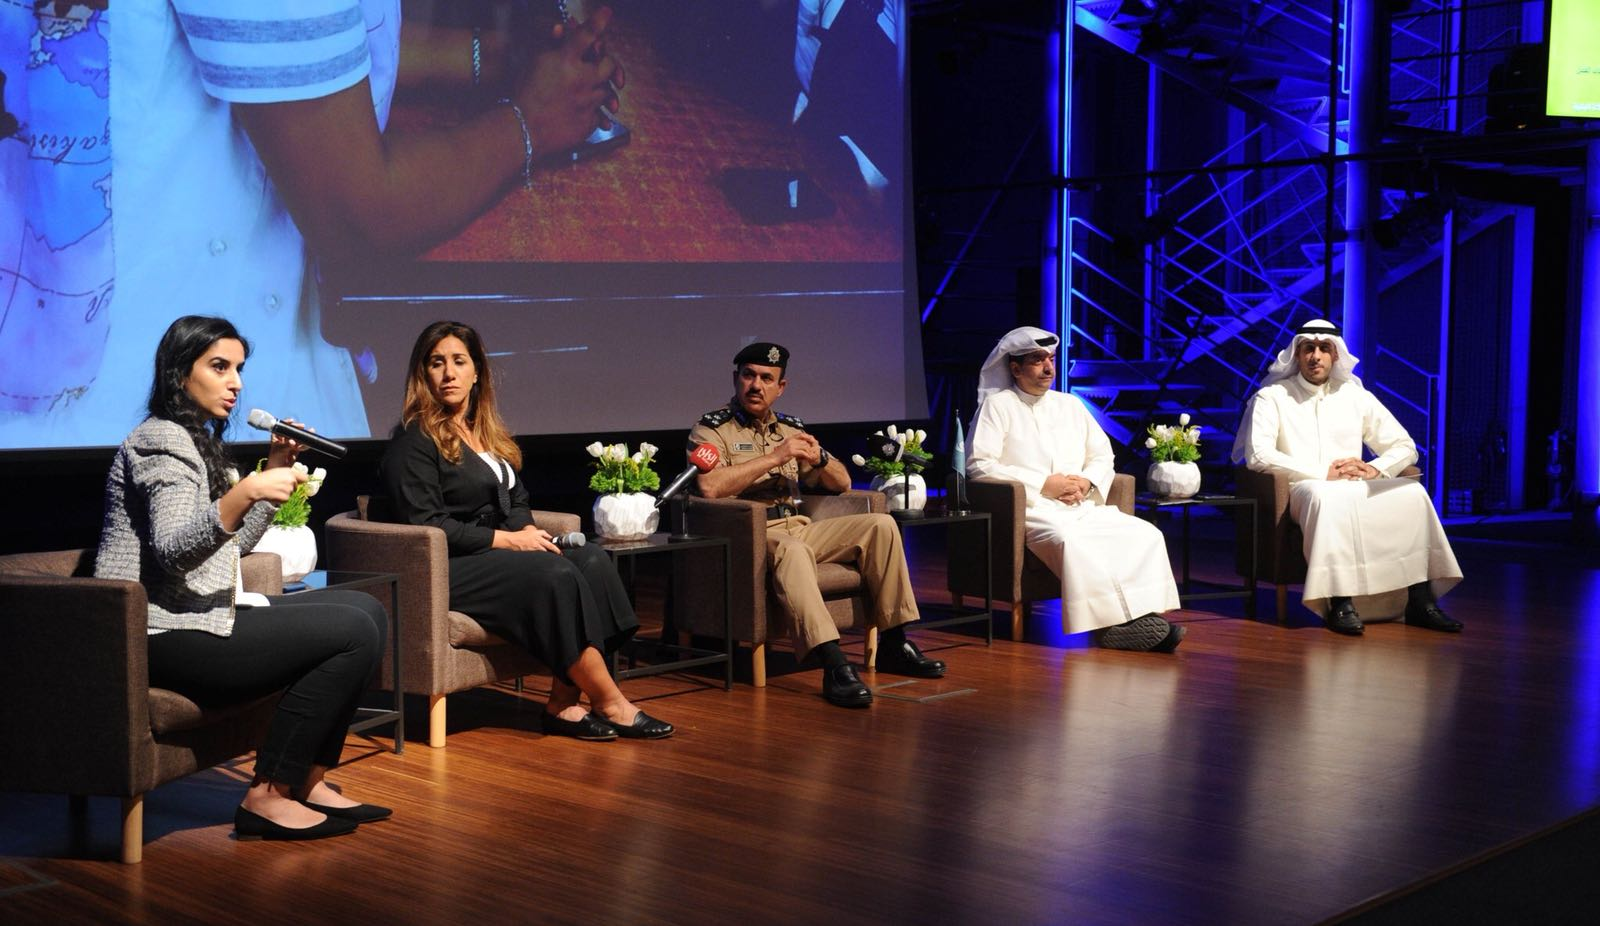 From Left to Right: Louloua Al Rodaini, Human Line Organisation; BiBi Al Sabah, Social Work Society, Brigadier Tahweed al Kandari, Public Relations and Security Information Department  Waleed Al Kashti, Zain; Abdullatif Al Sharekh, Al Ghanim Industries;